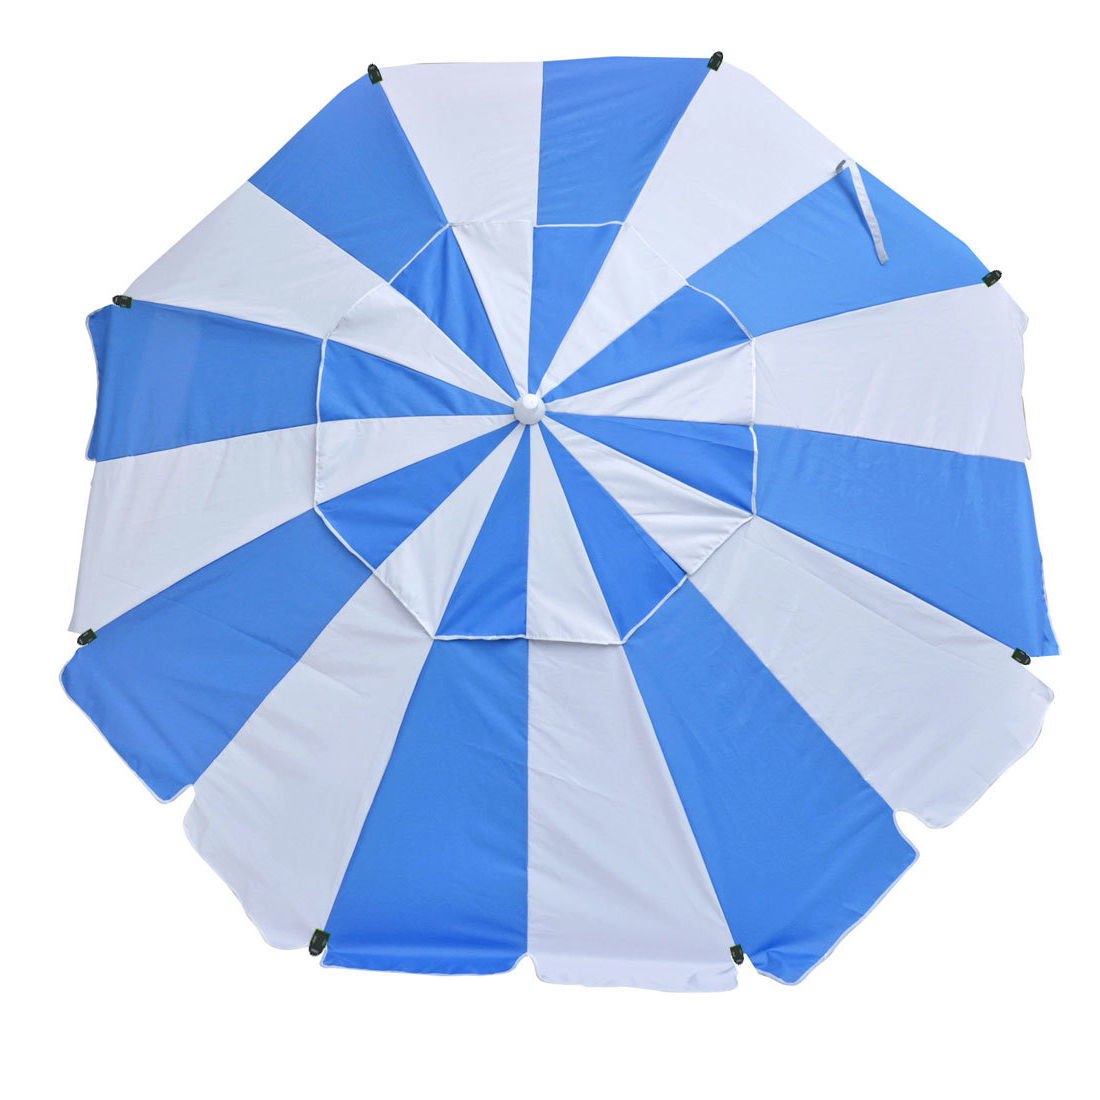 Schroeder Heavy Duty Beach Umbrellas For Well Known Victor Heavy Duty 8' Beach Umbrella (View 14 of 20)